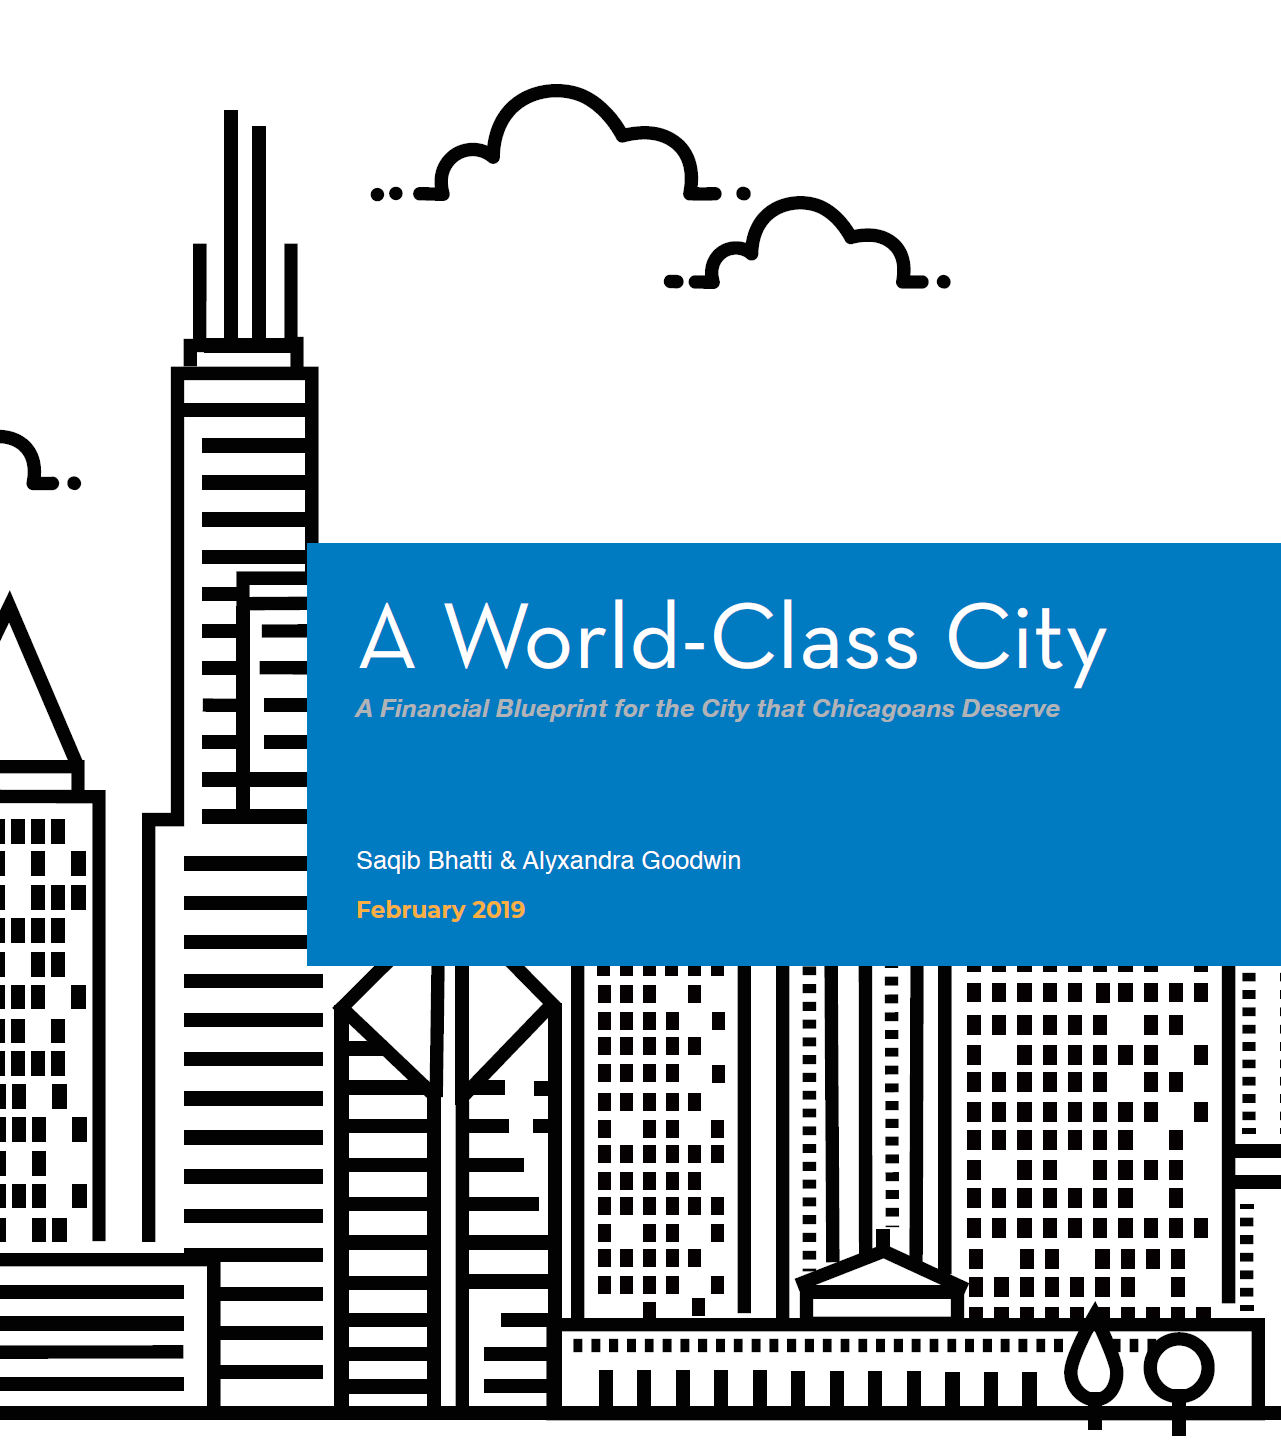 AWorldClassCity.png